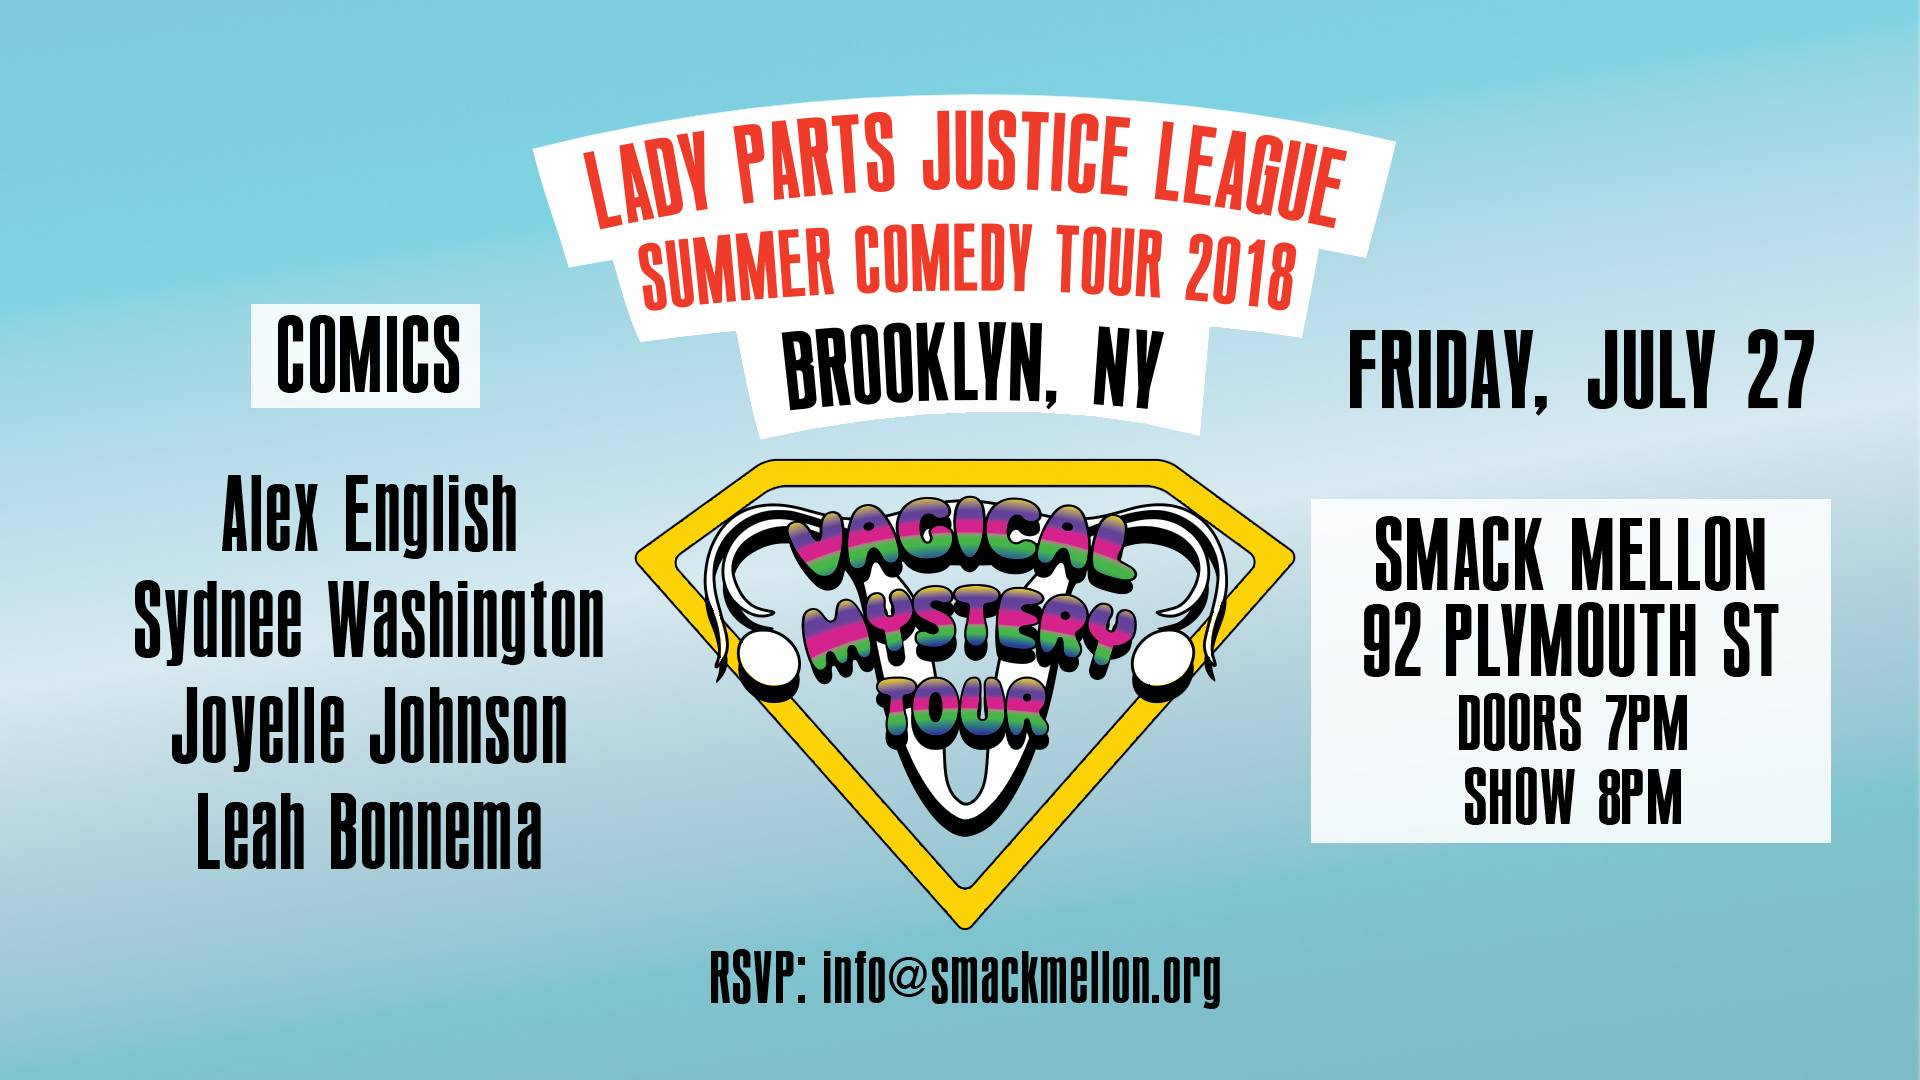 The Lady Parts Justice League Stand-Up Comedy Night